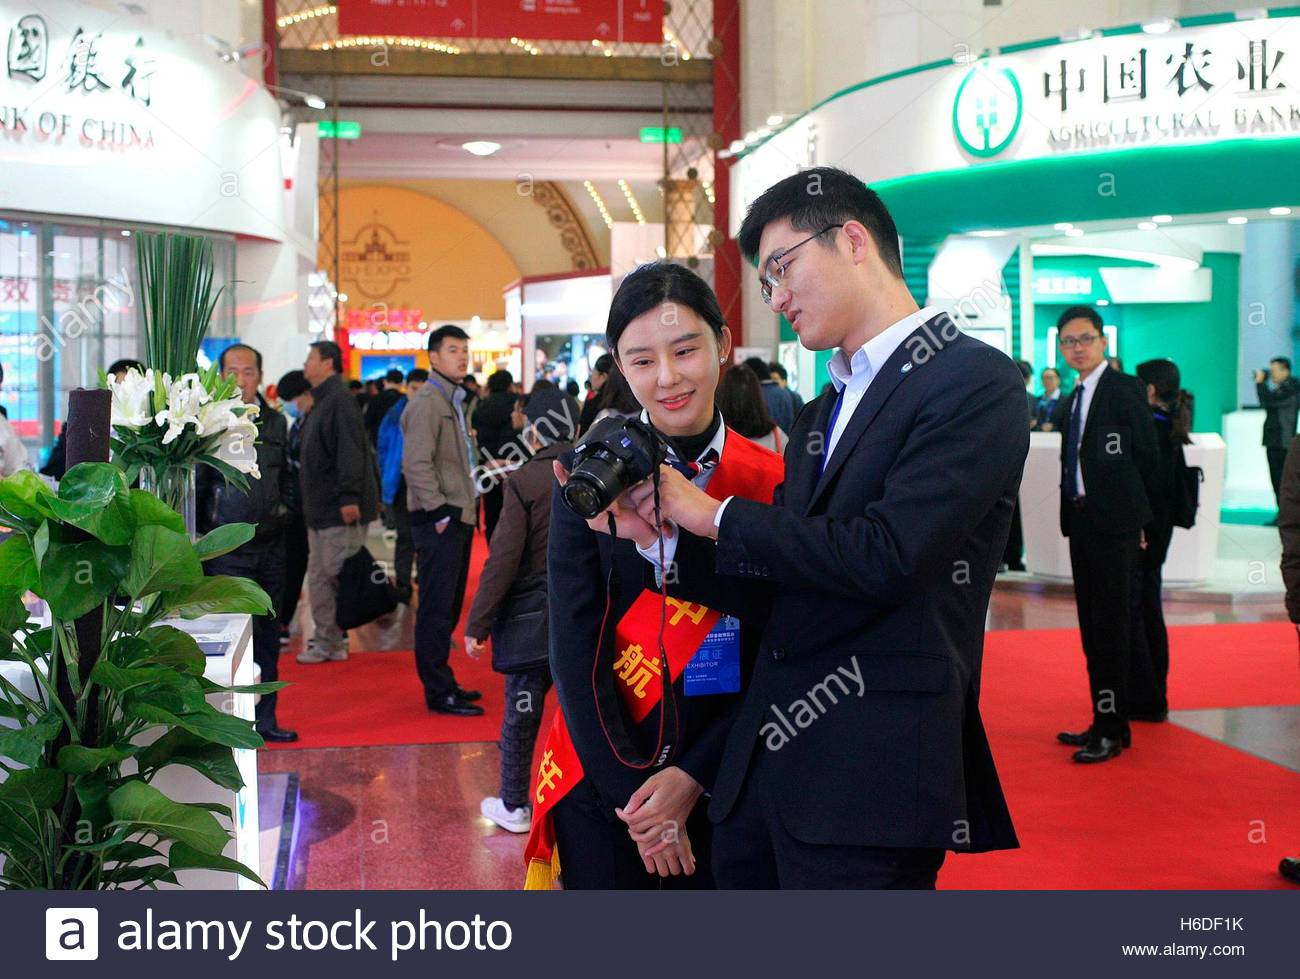 Beijing, China. 27th Oct, 2016. The 143 Financial institutions attend the 2016 12th Beijing international financial - Stock Image